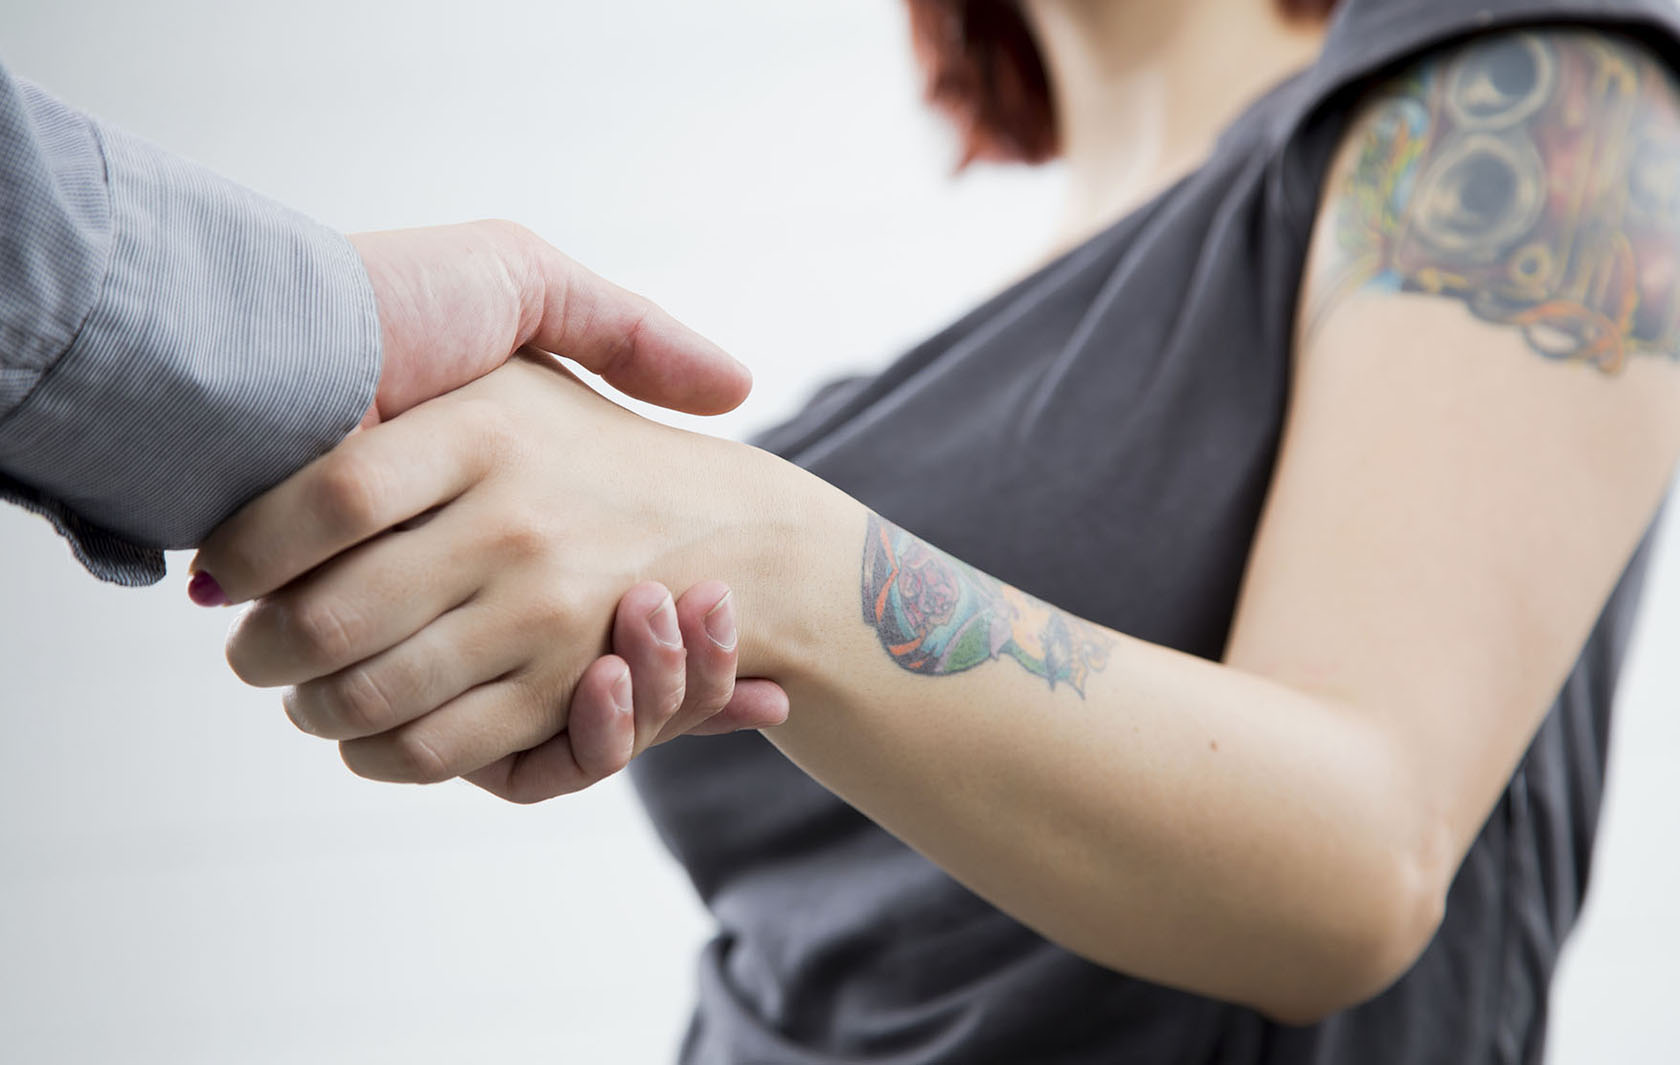 Tattoos in the Workplace –  Why You May Want to Rethink Your Ink.